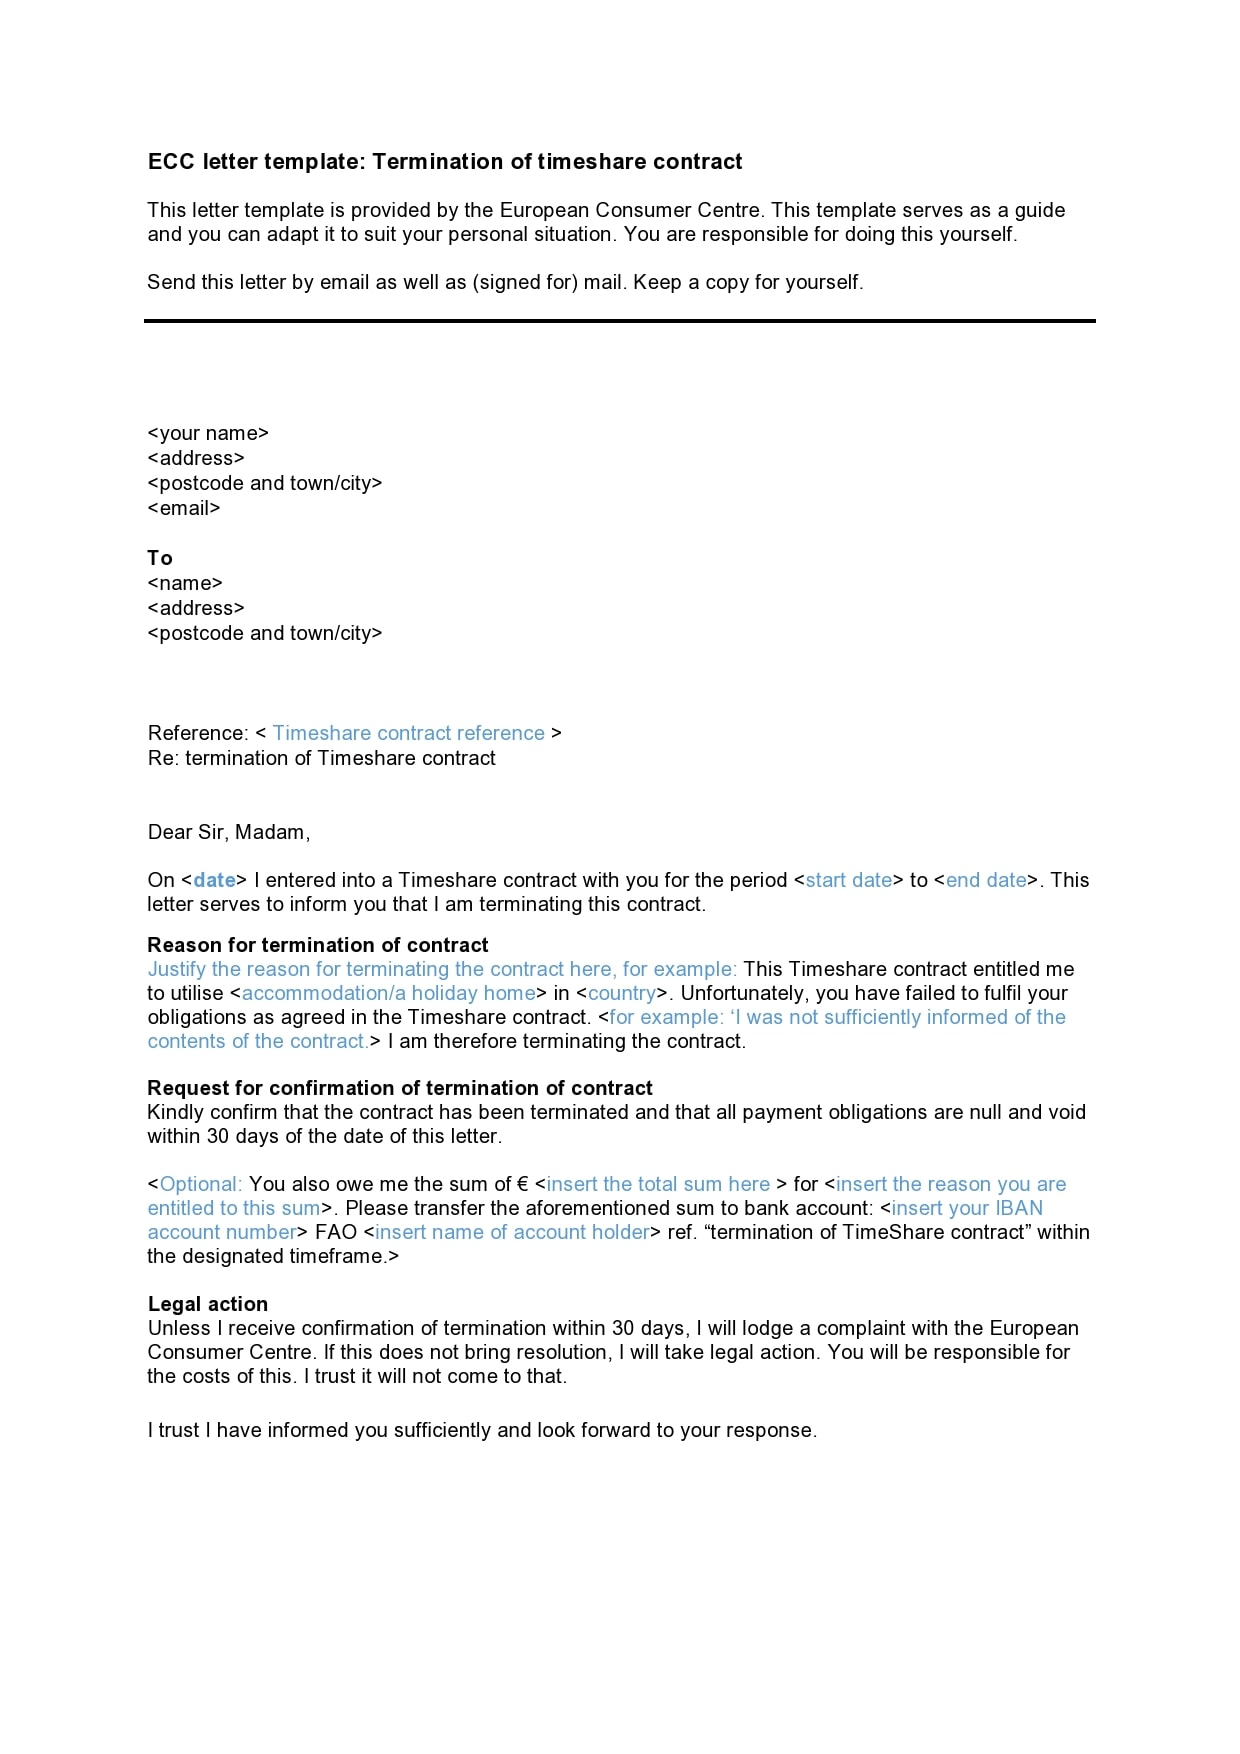 Timeshare Cancellation Letter Template from templatearchive.com